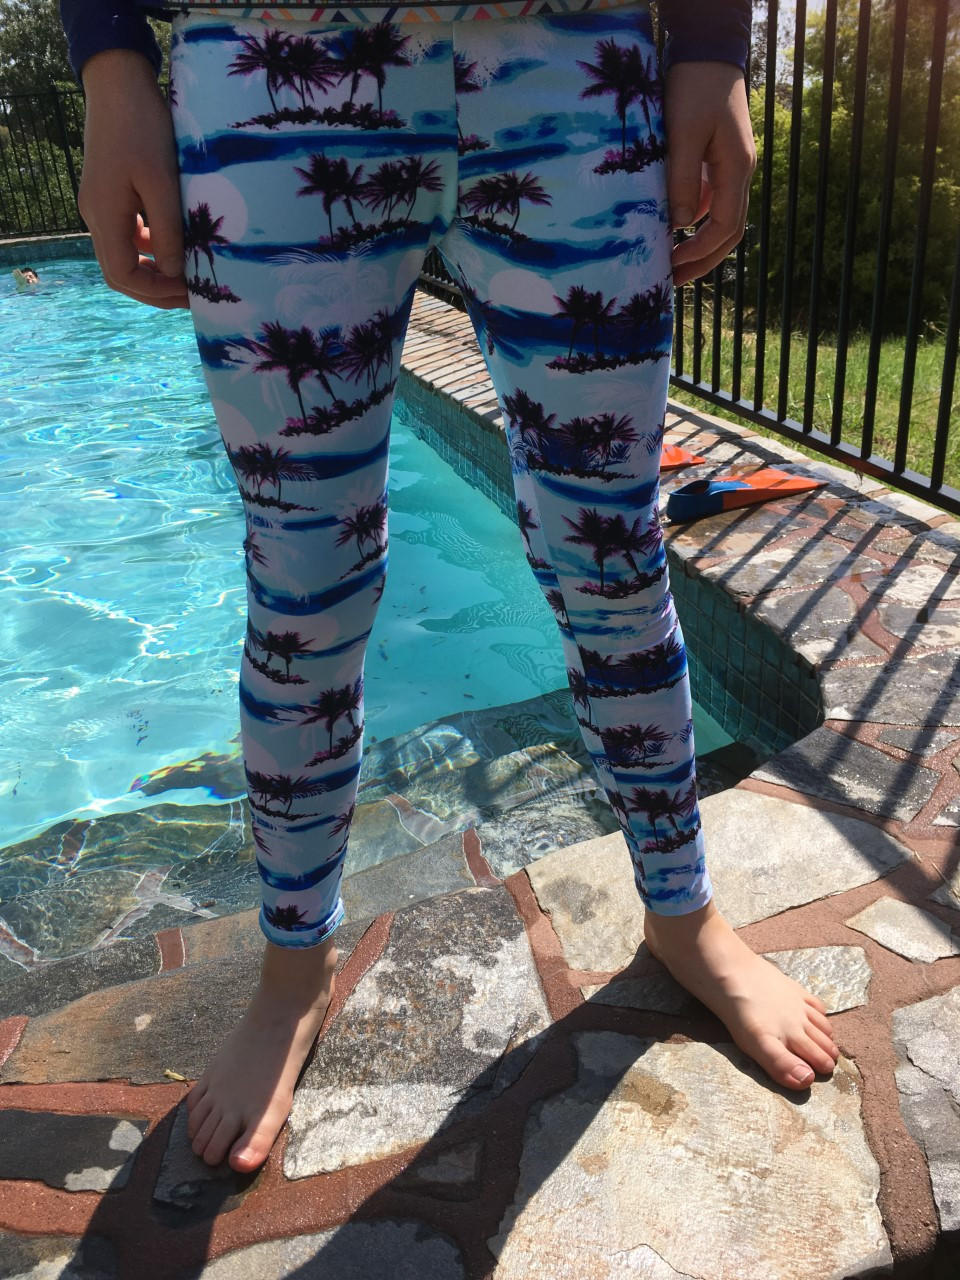 Children's swim tights for sun protection in the water this summer